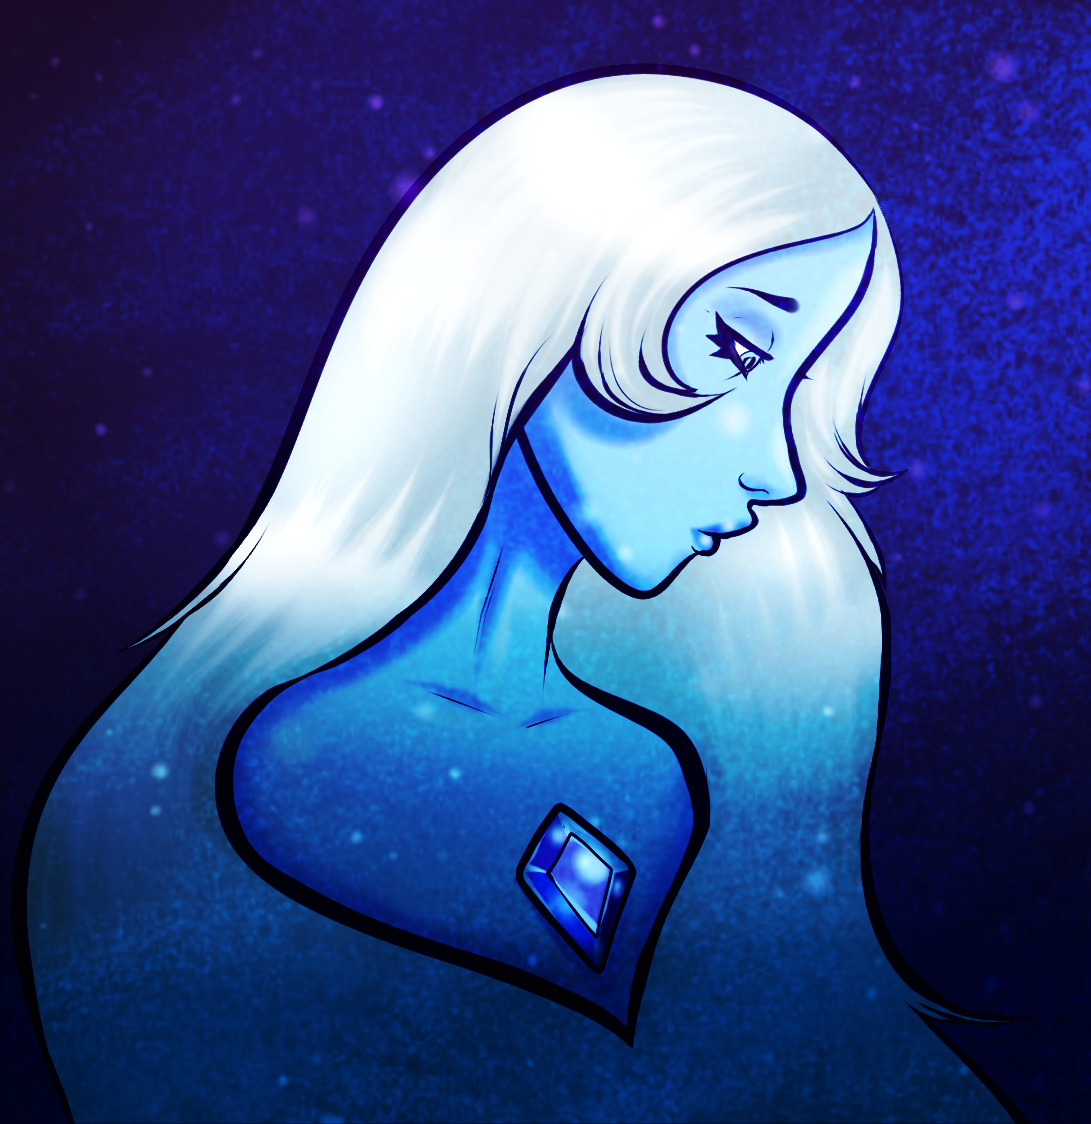 Jumping on the Blue Diamond bandwagon